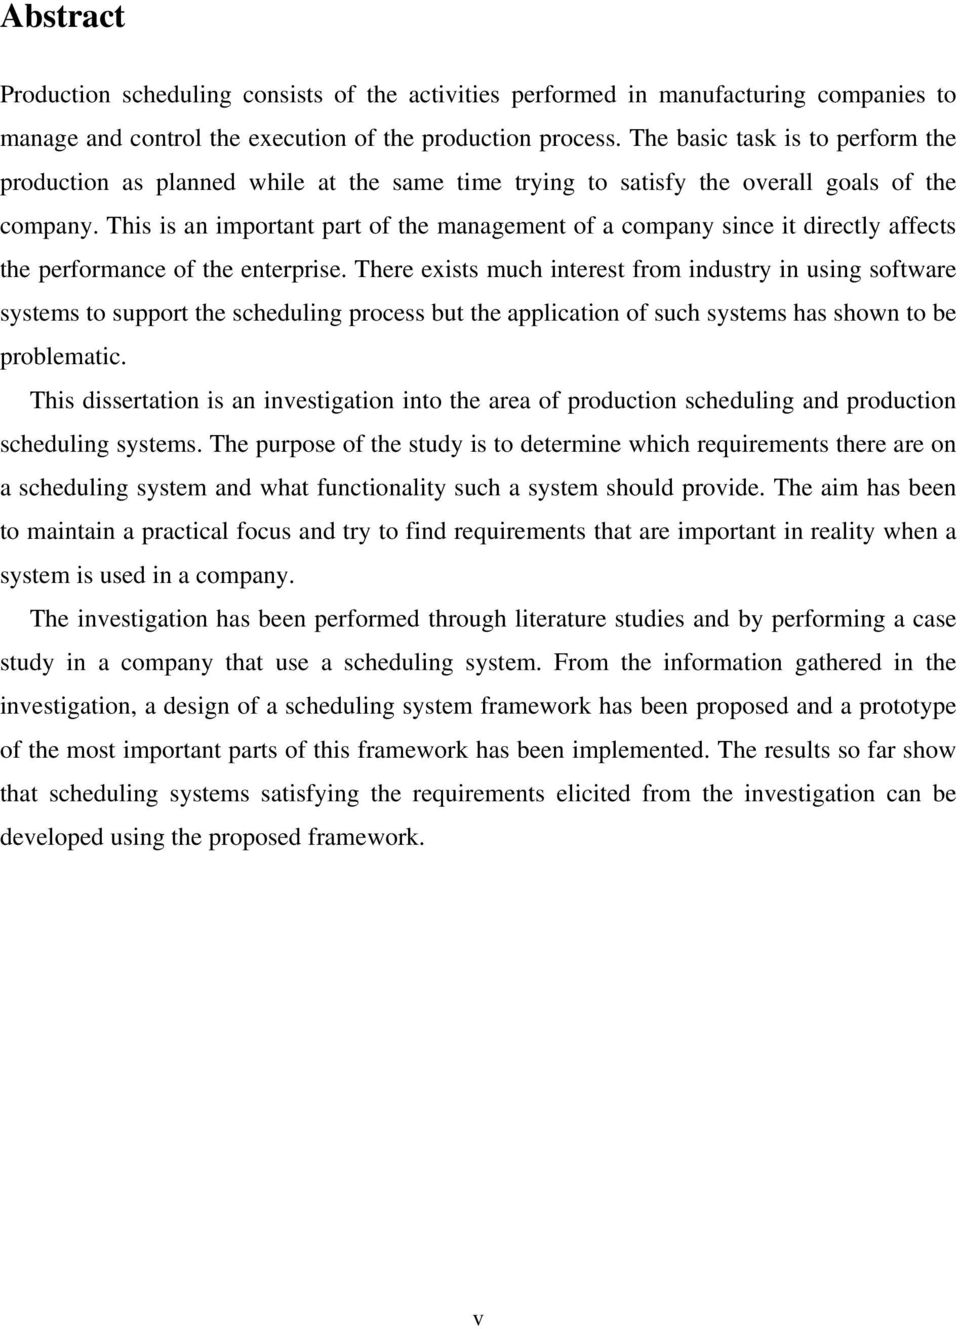 This is an important part of the management of a company since it directly affects the performance of the enterprise.